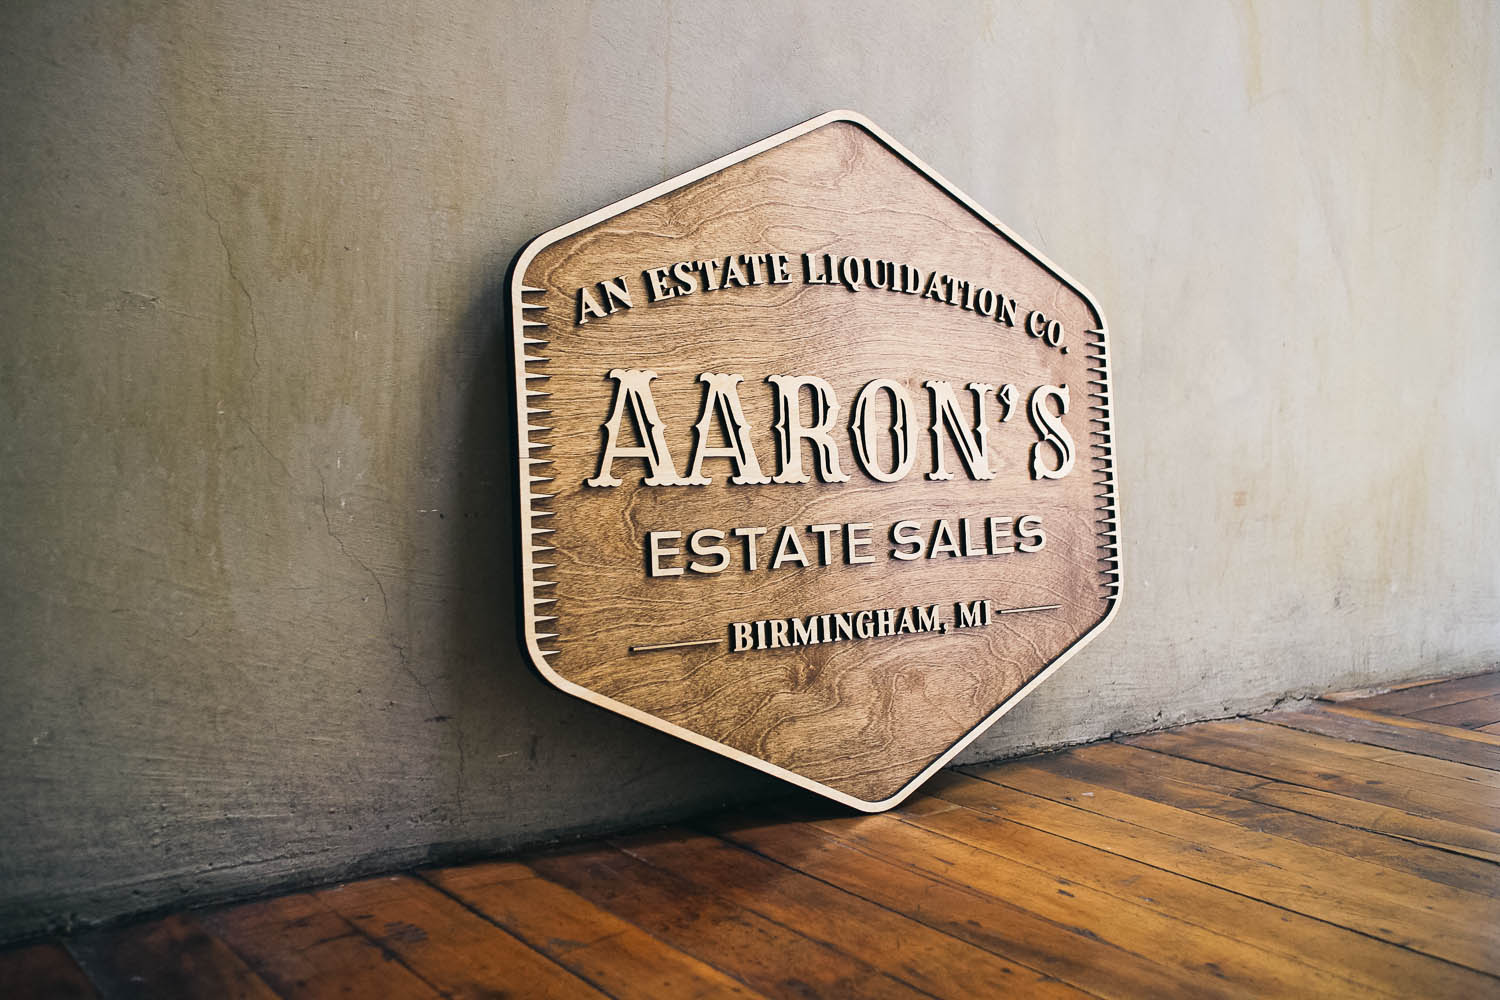 Aaron's estate sales sign